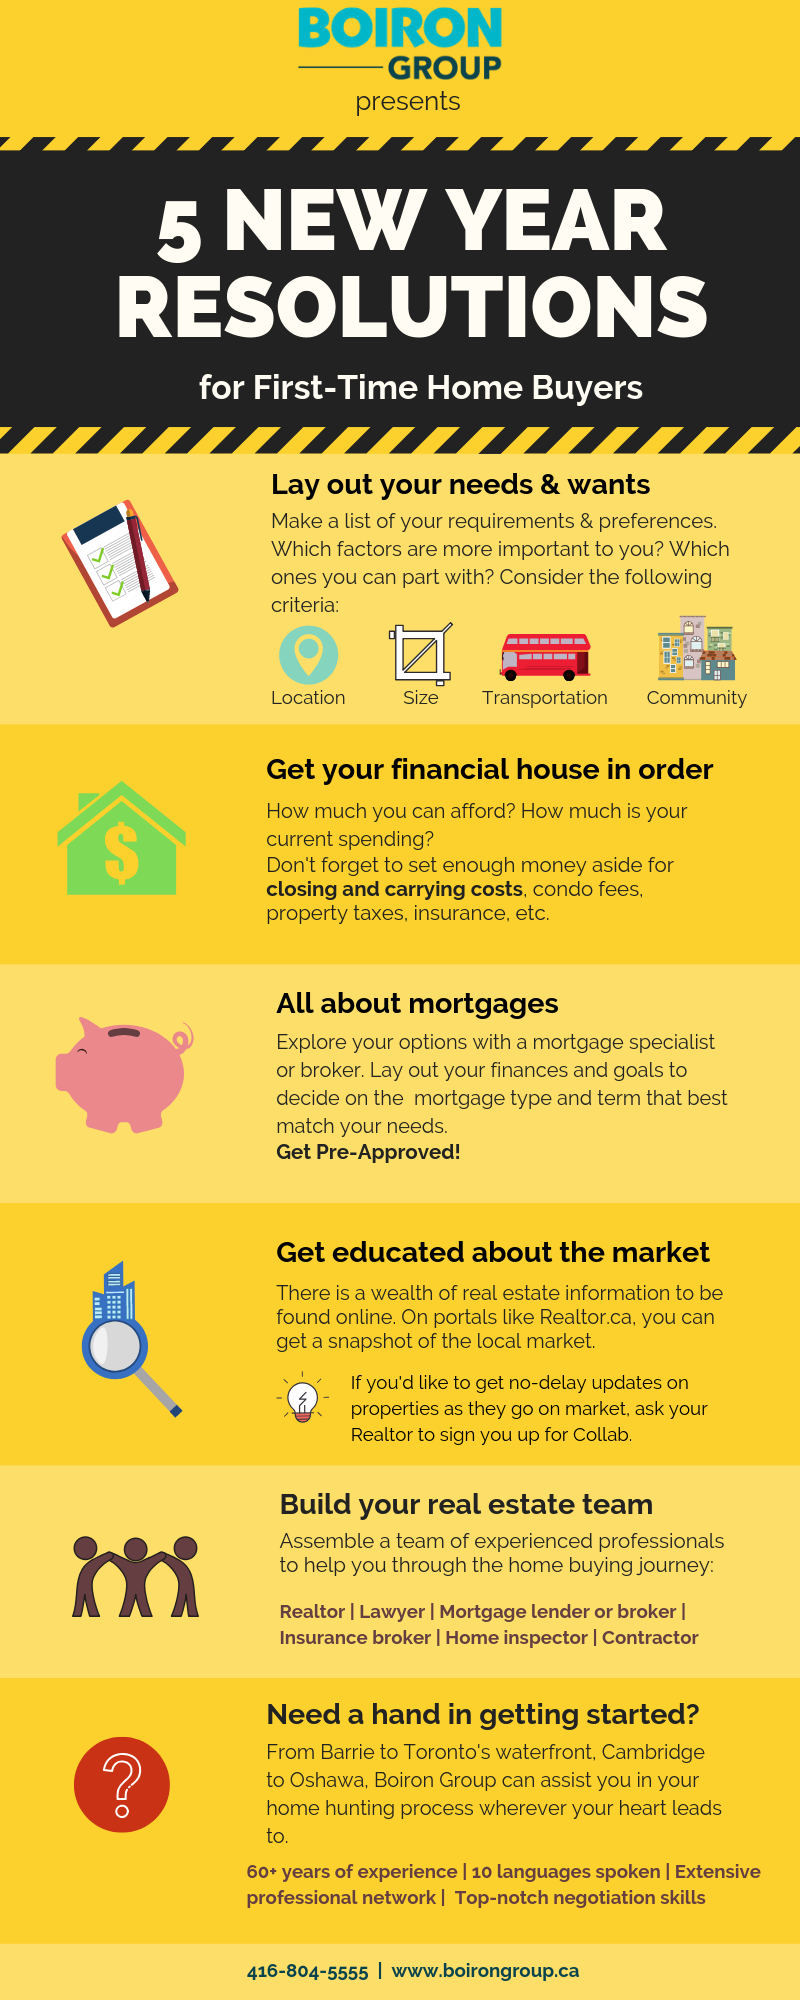 5 New Year Resolutions for first-time home buyers.png